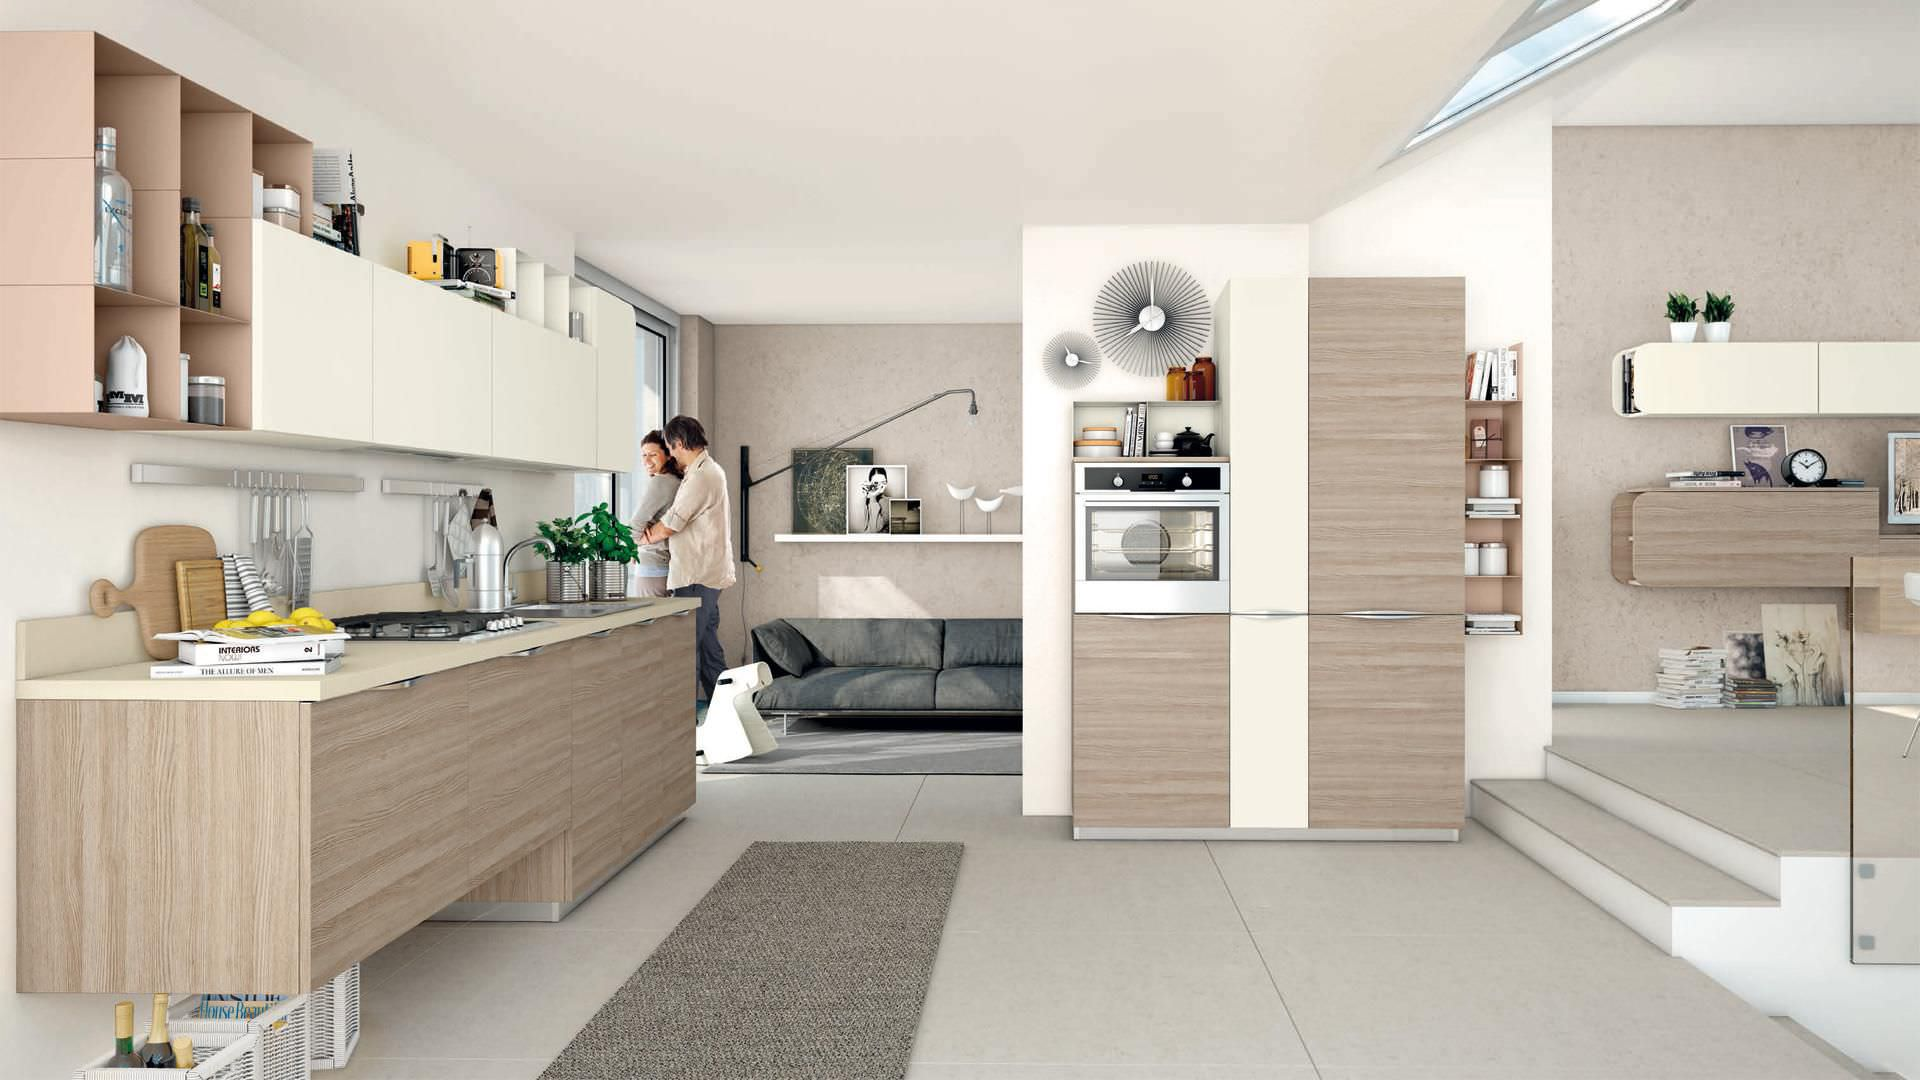 Contemporary Kitchen Immagina Cucine Lube Wood Veneer Lacquered With Handles